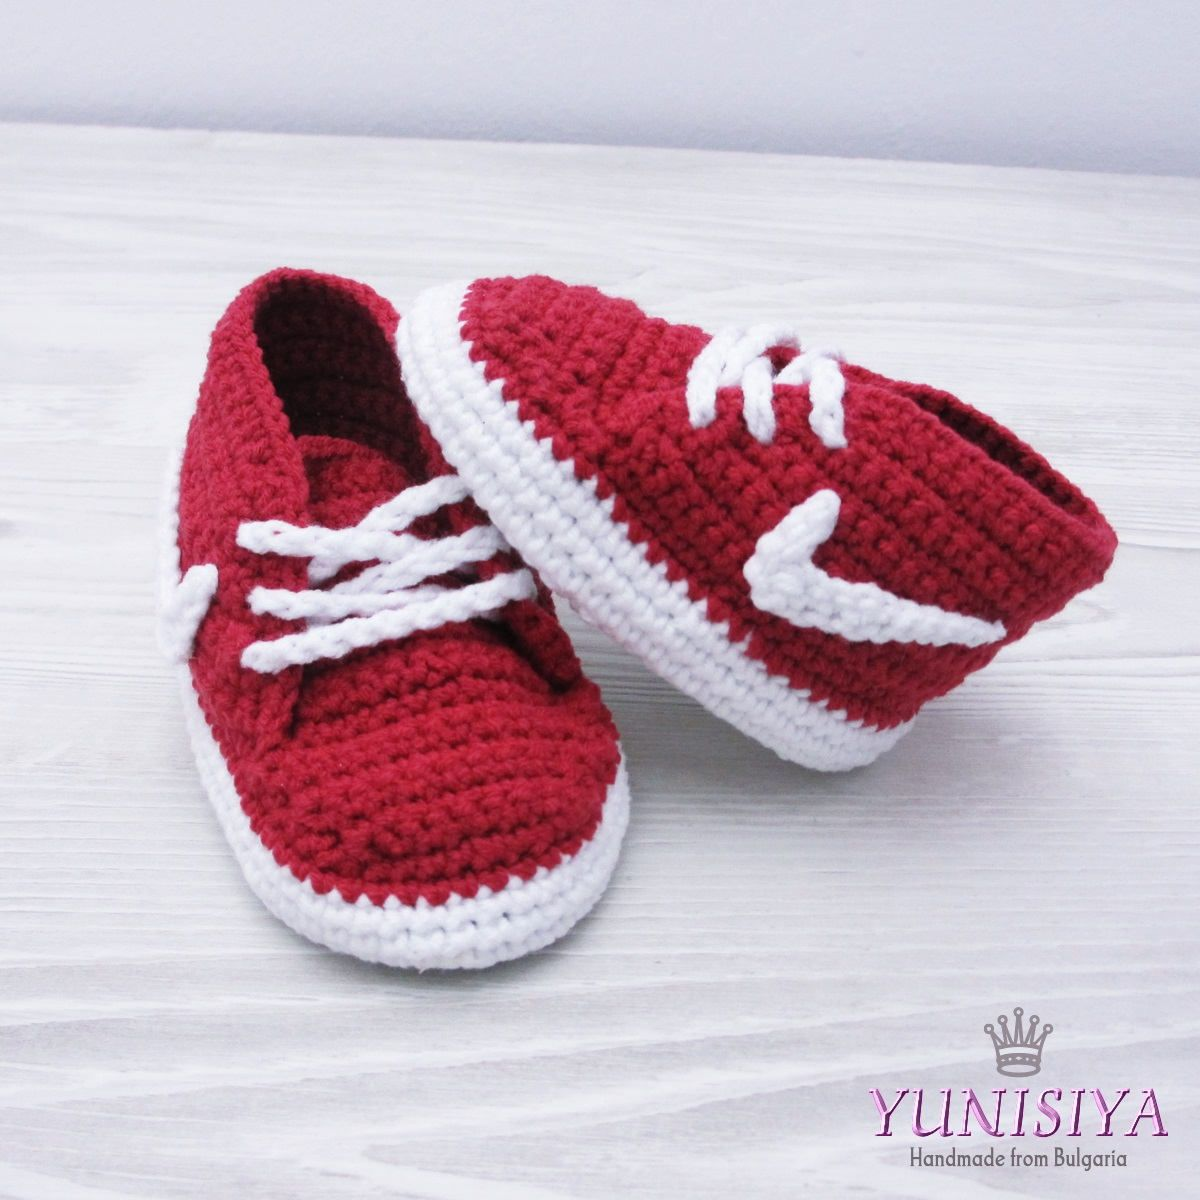 Crochet baby shoes Crochet baby booties 0-3 months Athletic shoes Crochet  sneakers Nike sneakers Red booties Uunique baby gift Baby shower by  Yunisiya on ... f58f2e4ec